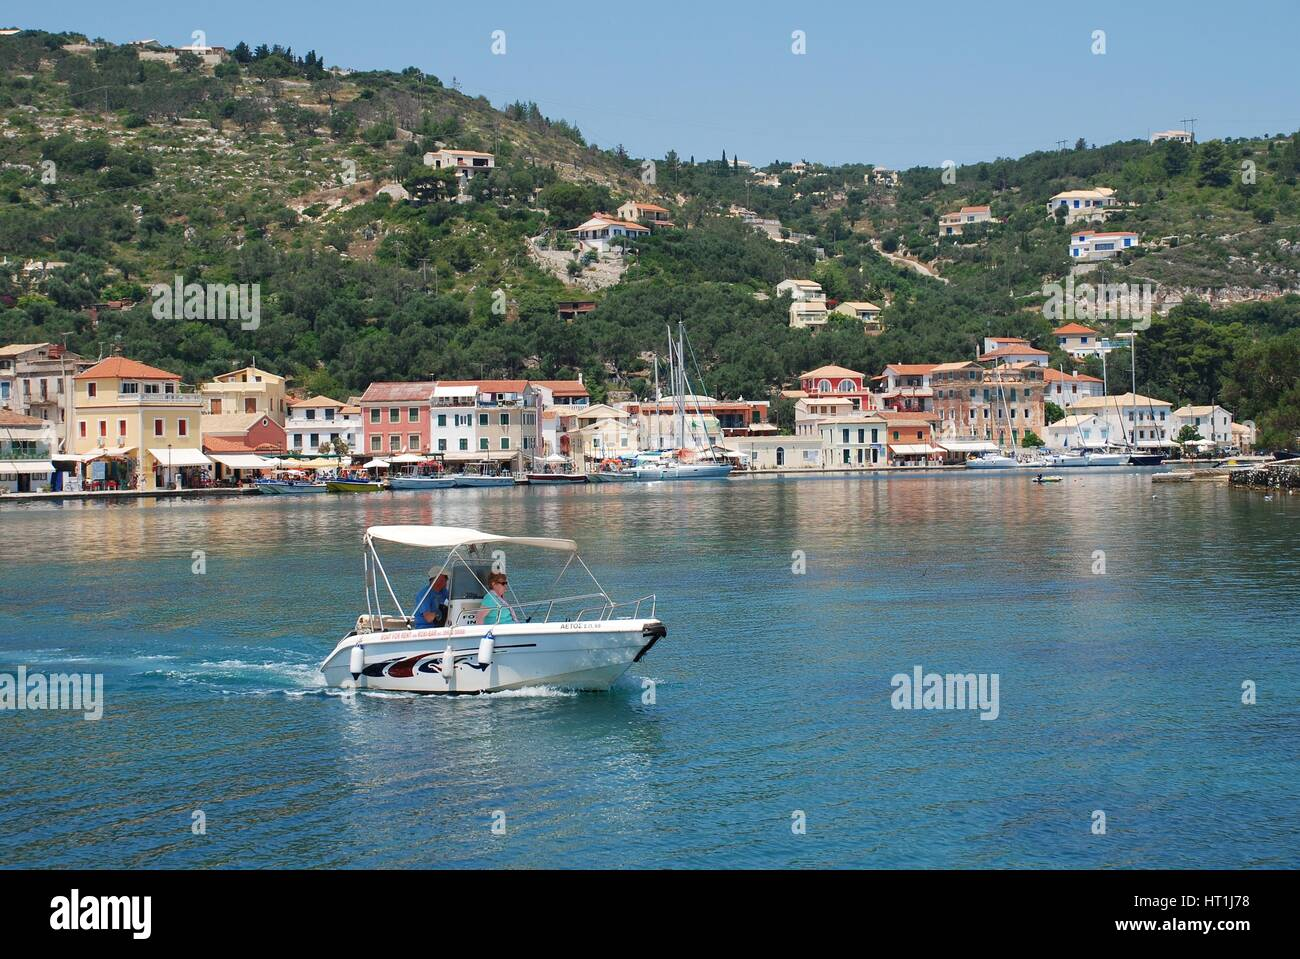 A small boat head out of Gaios harbour on the Greek island of Paxos. - Stock Image